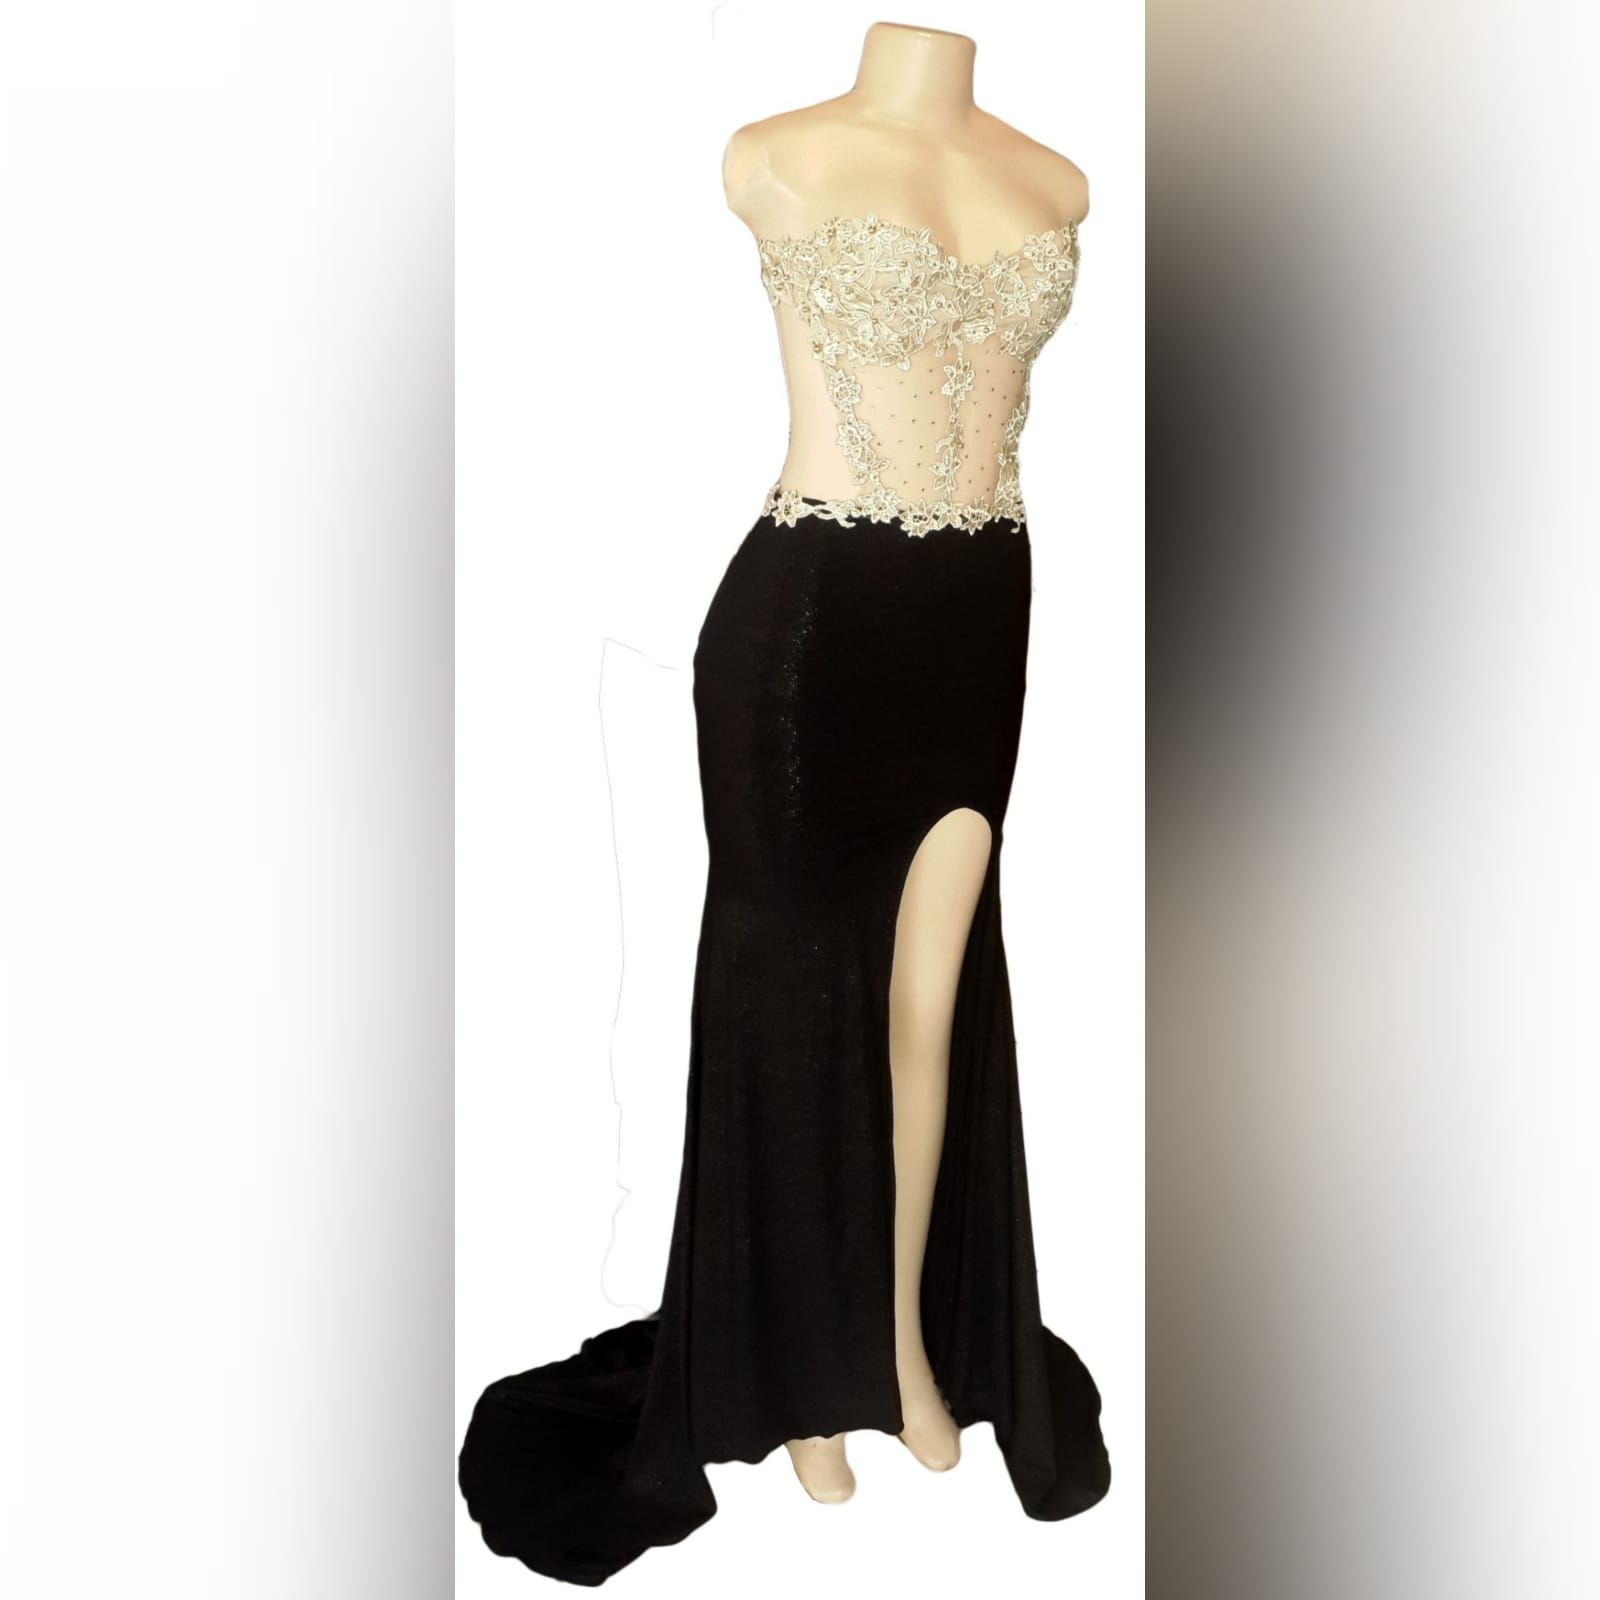 Black shimmer and gold pageant evening dress 5 black shimmer and gold pageant evening dress, with a naked back effect with strap detail, sheer tummy, with a slit and a train.